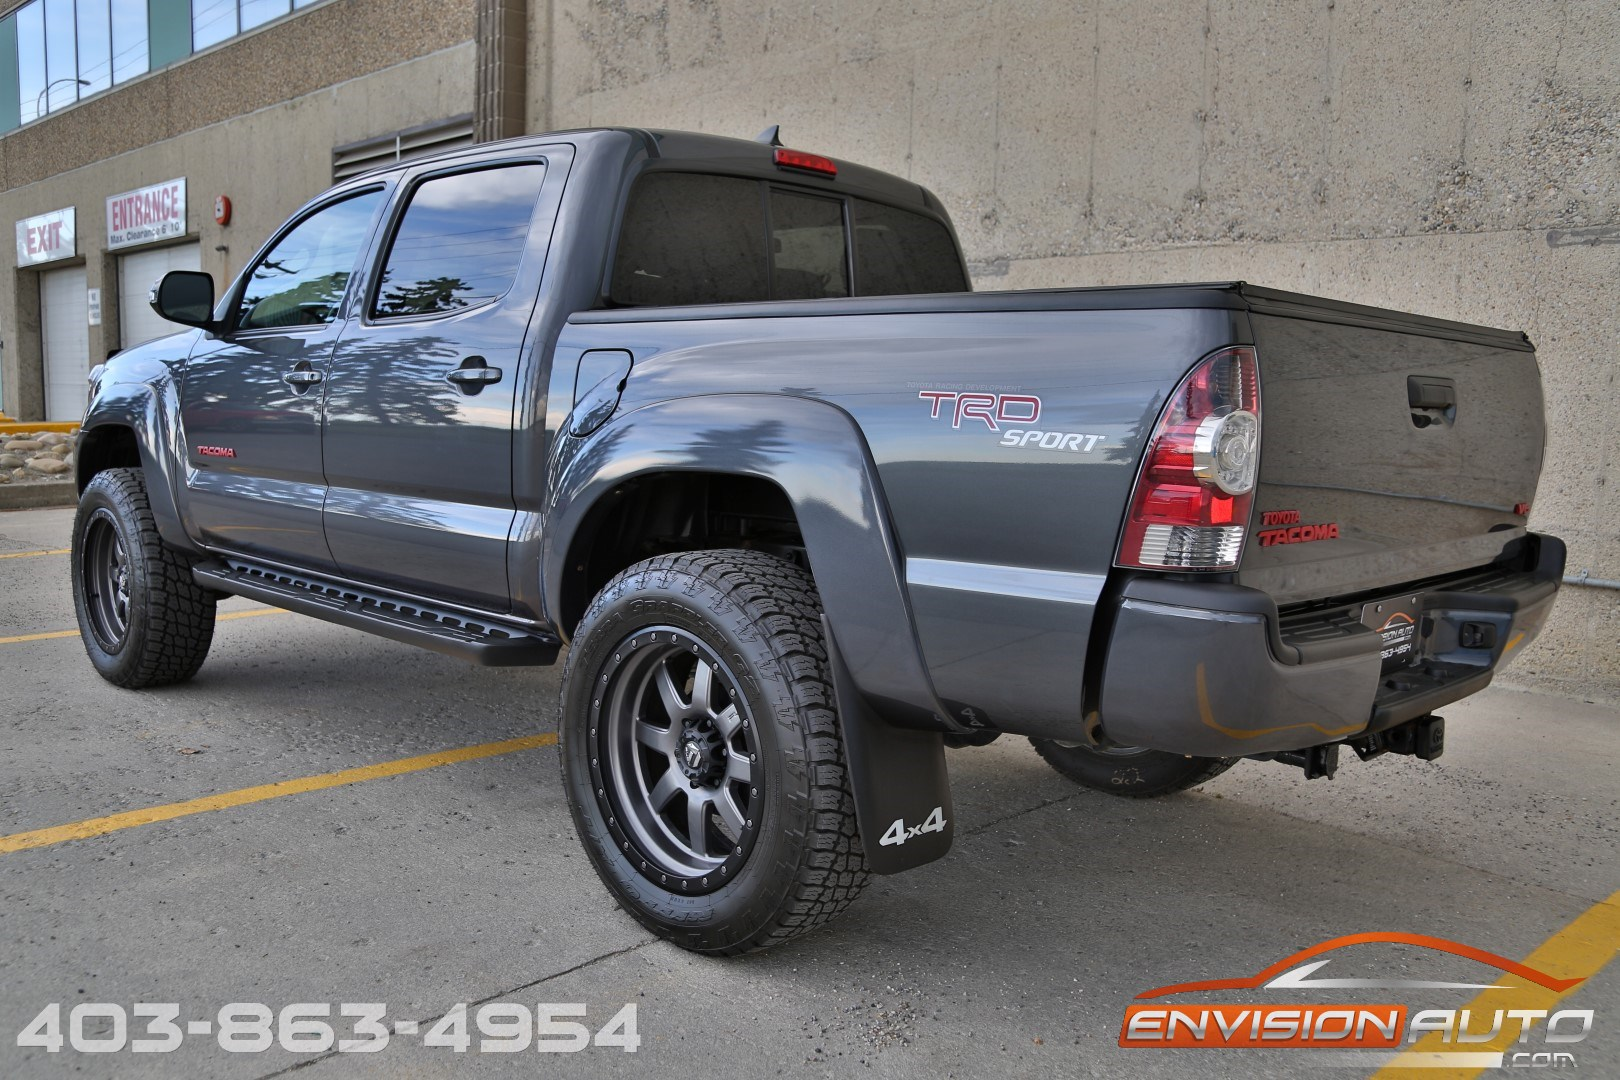 2012 Toyota Tacoma Double Cab Trd Sport 4 215 4 Lifted 20in Fuel Wheels Envision Auto